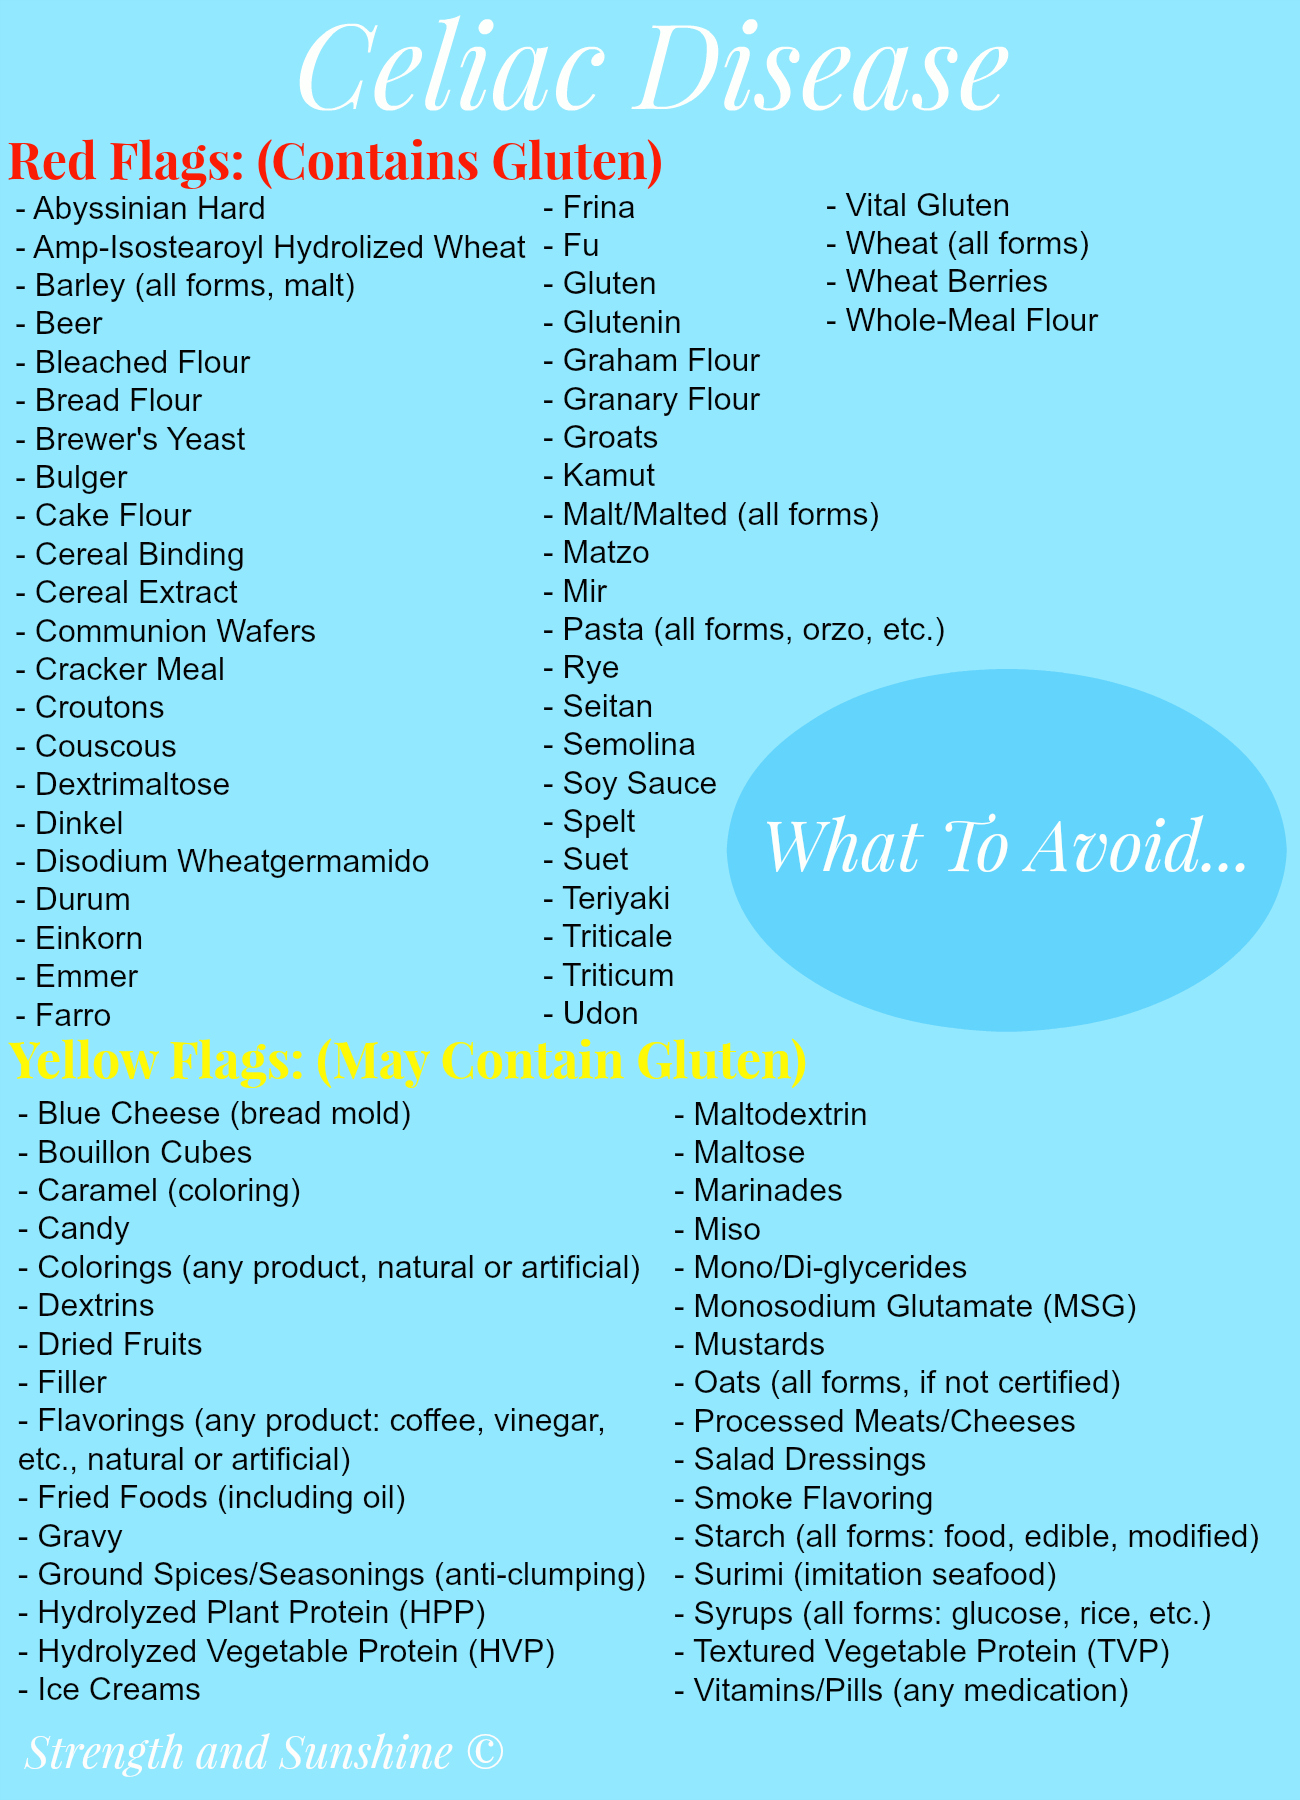 What To Avoid With Celiac Disease